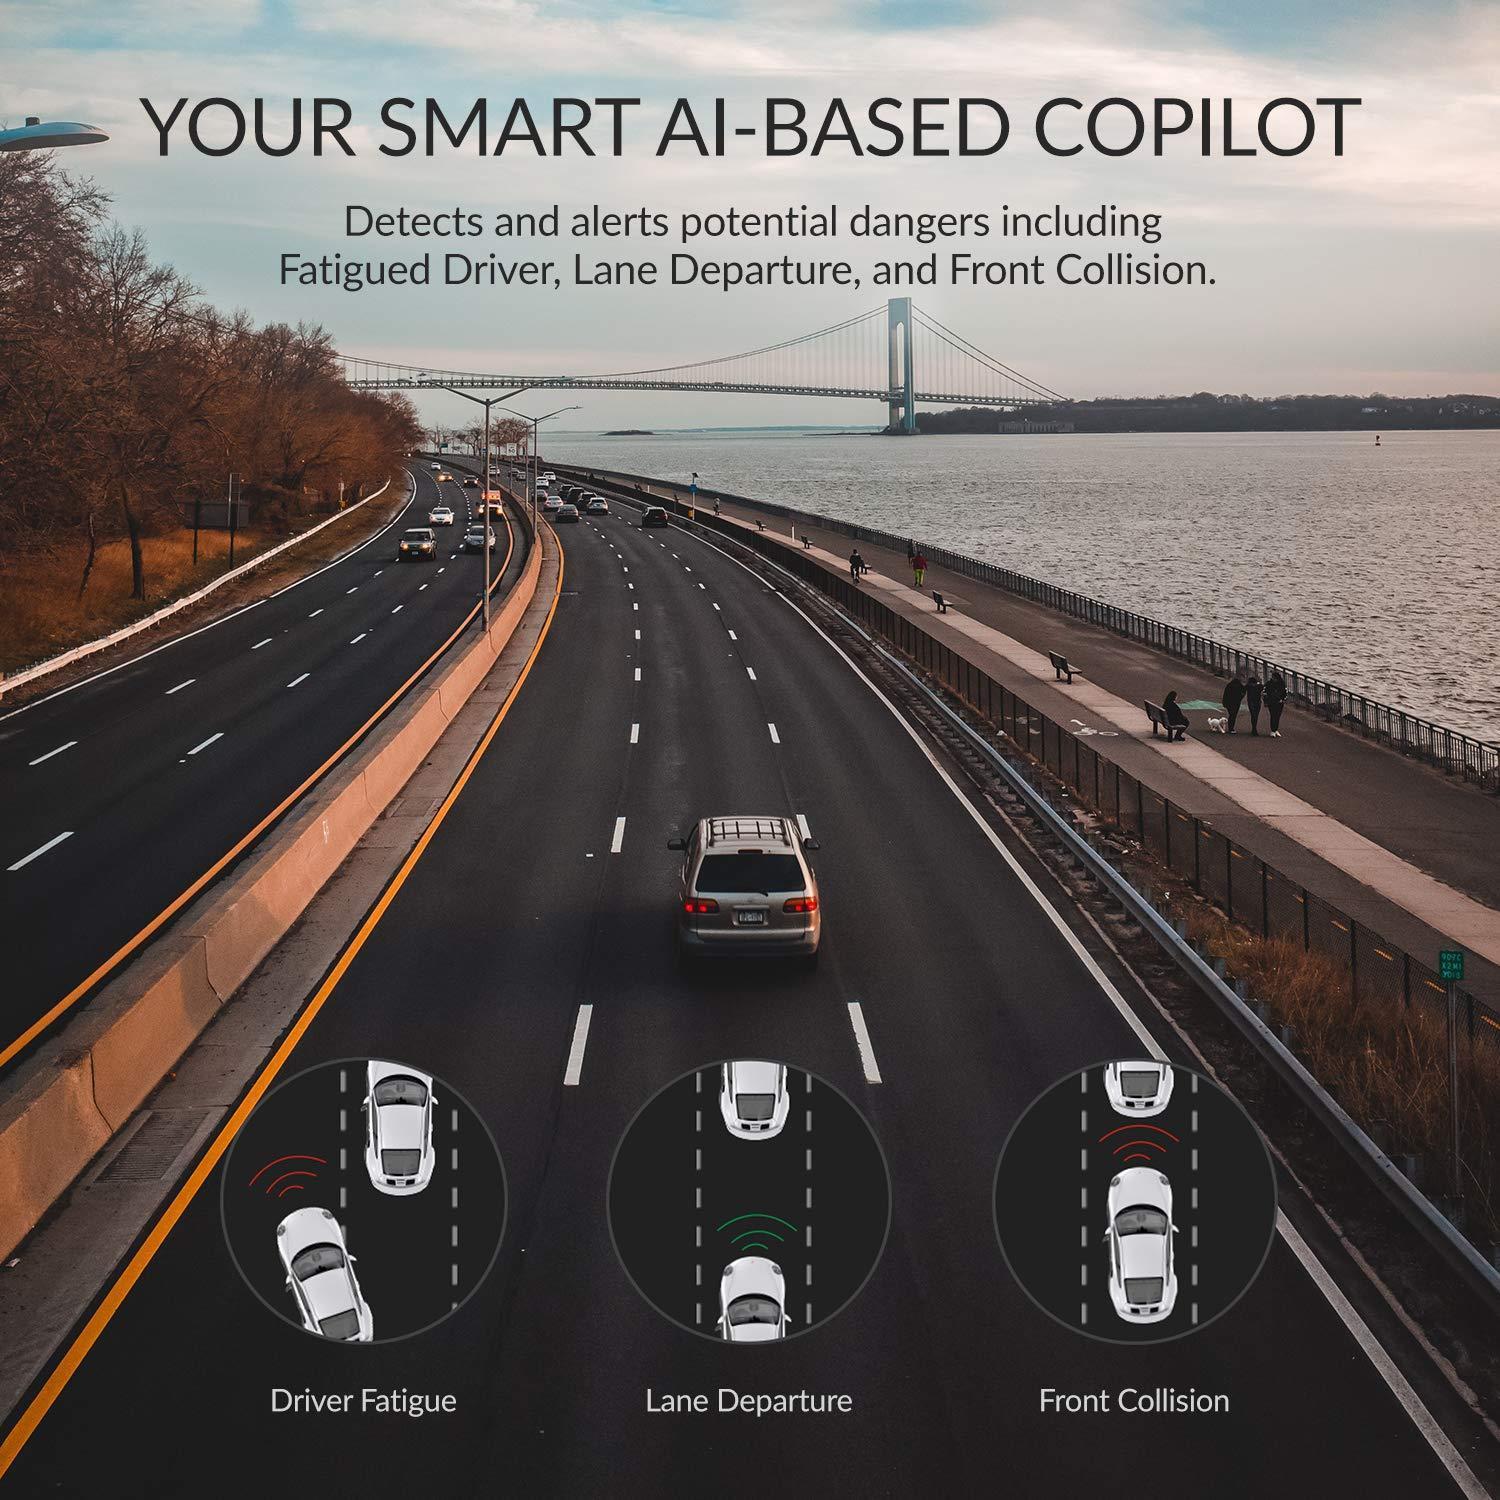 Your smart AI-Based copilot - Detects and alerts potential dangers including fatigued driver, lane departure, and front collision